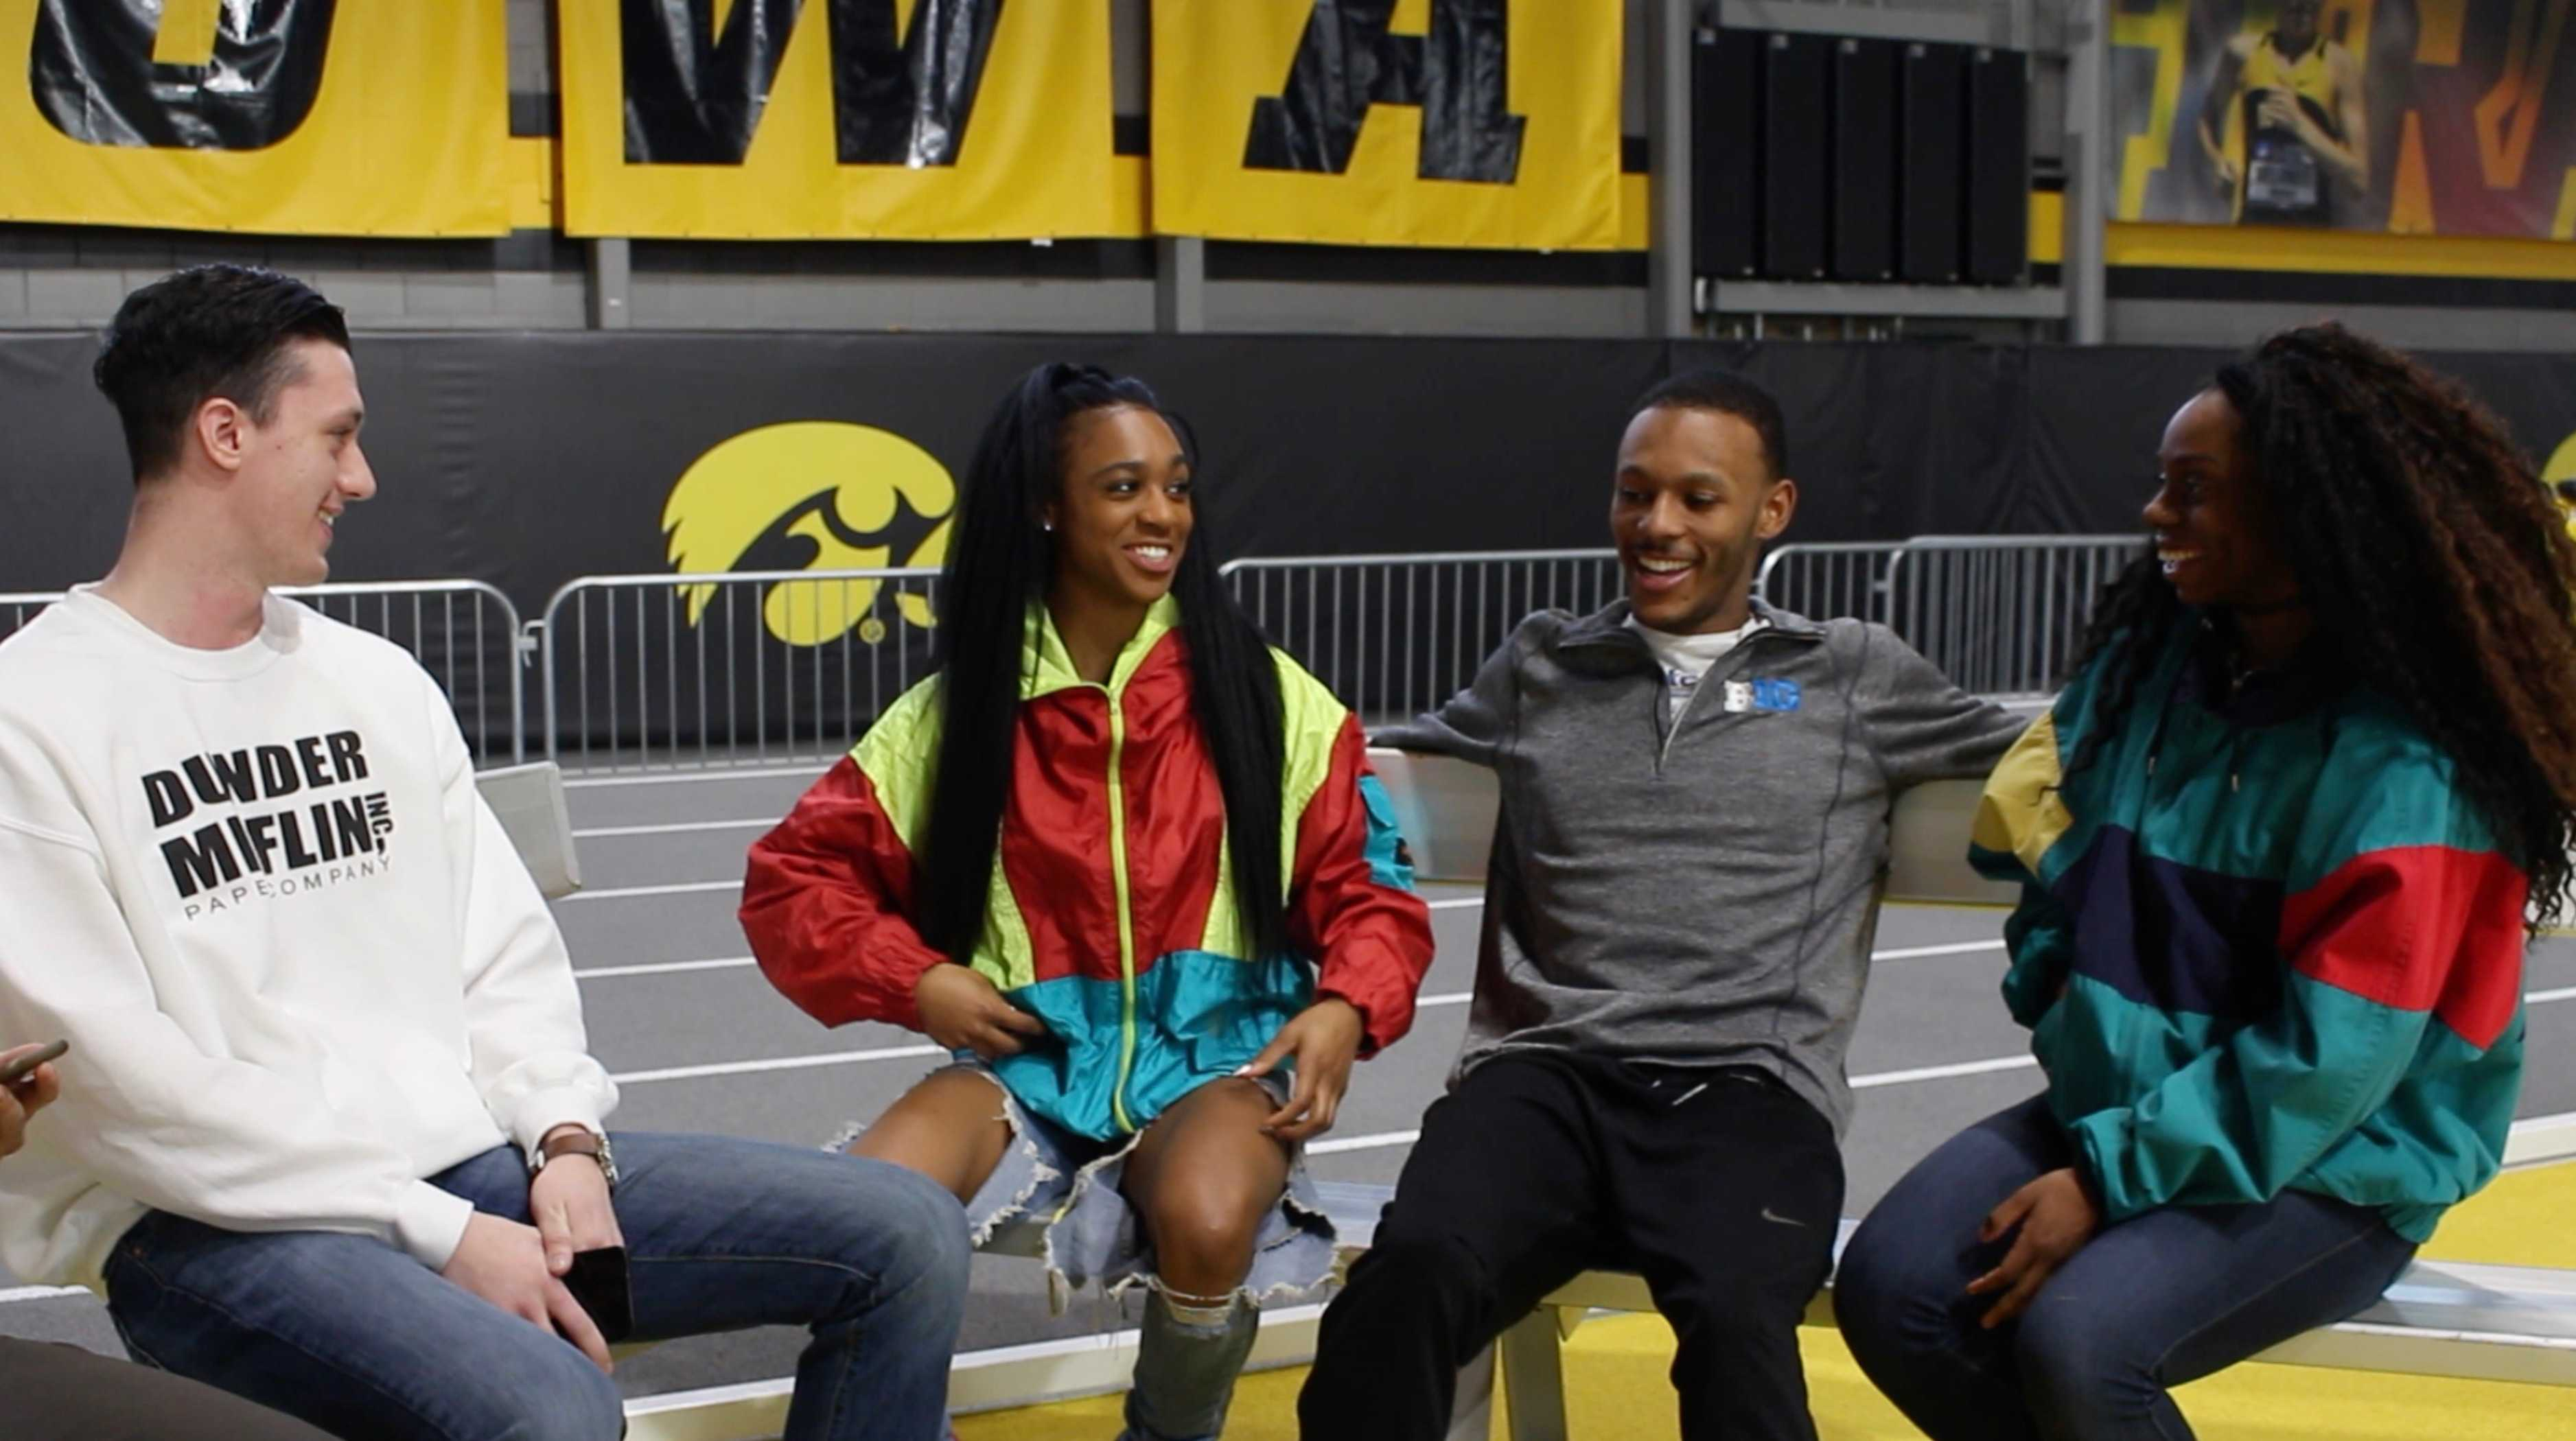 On the Bench: UI tracksters discuss the season with the DI